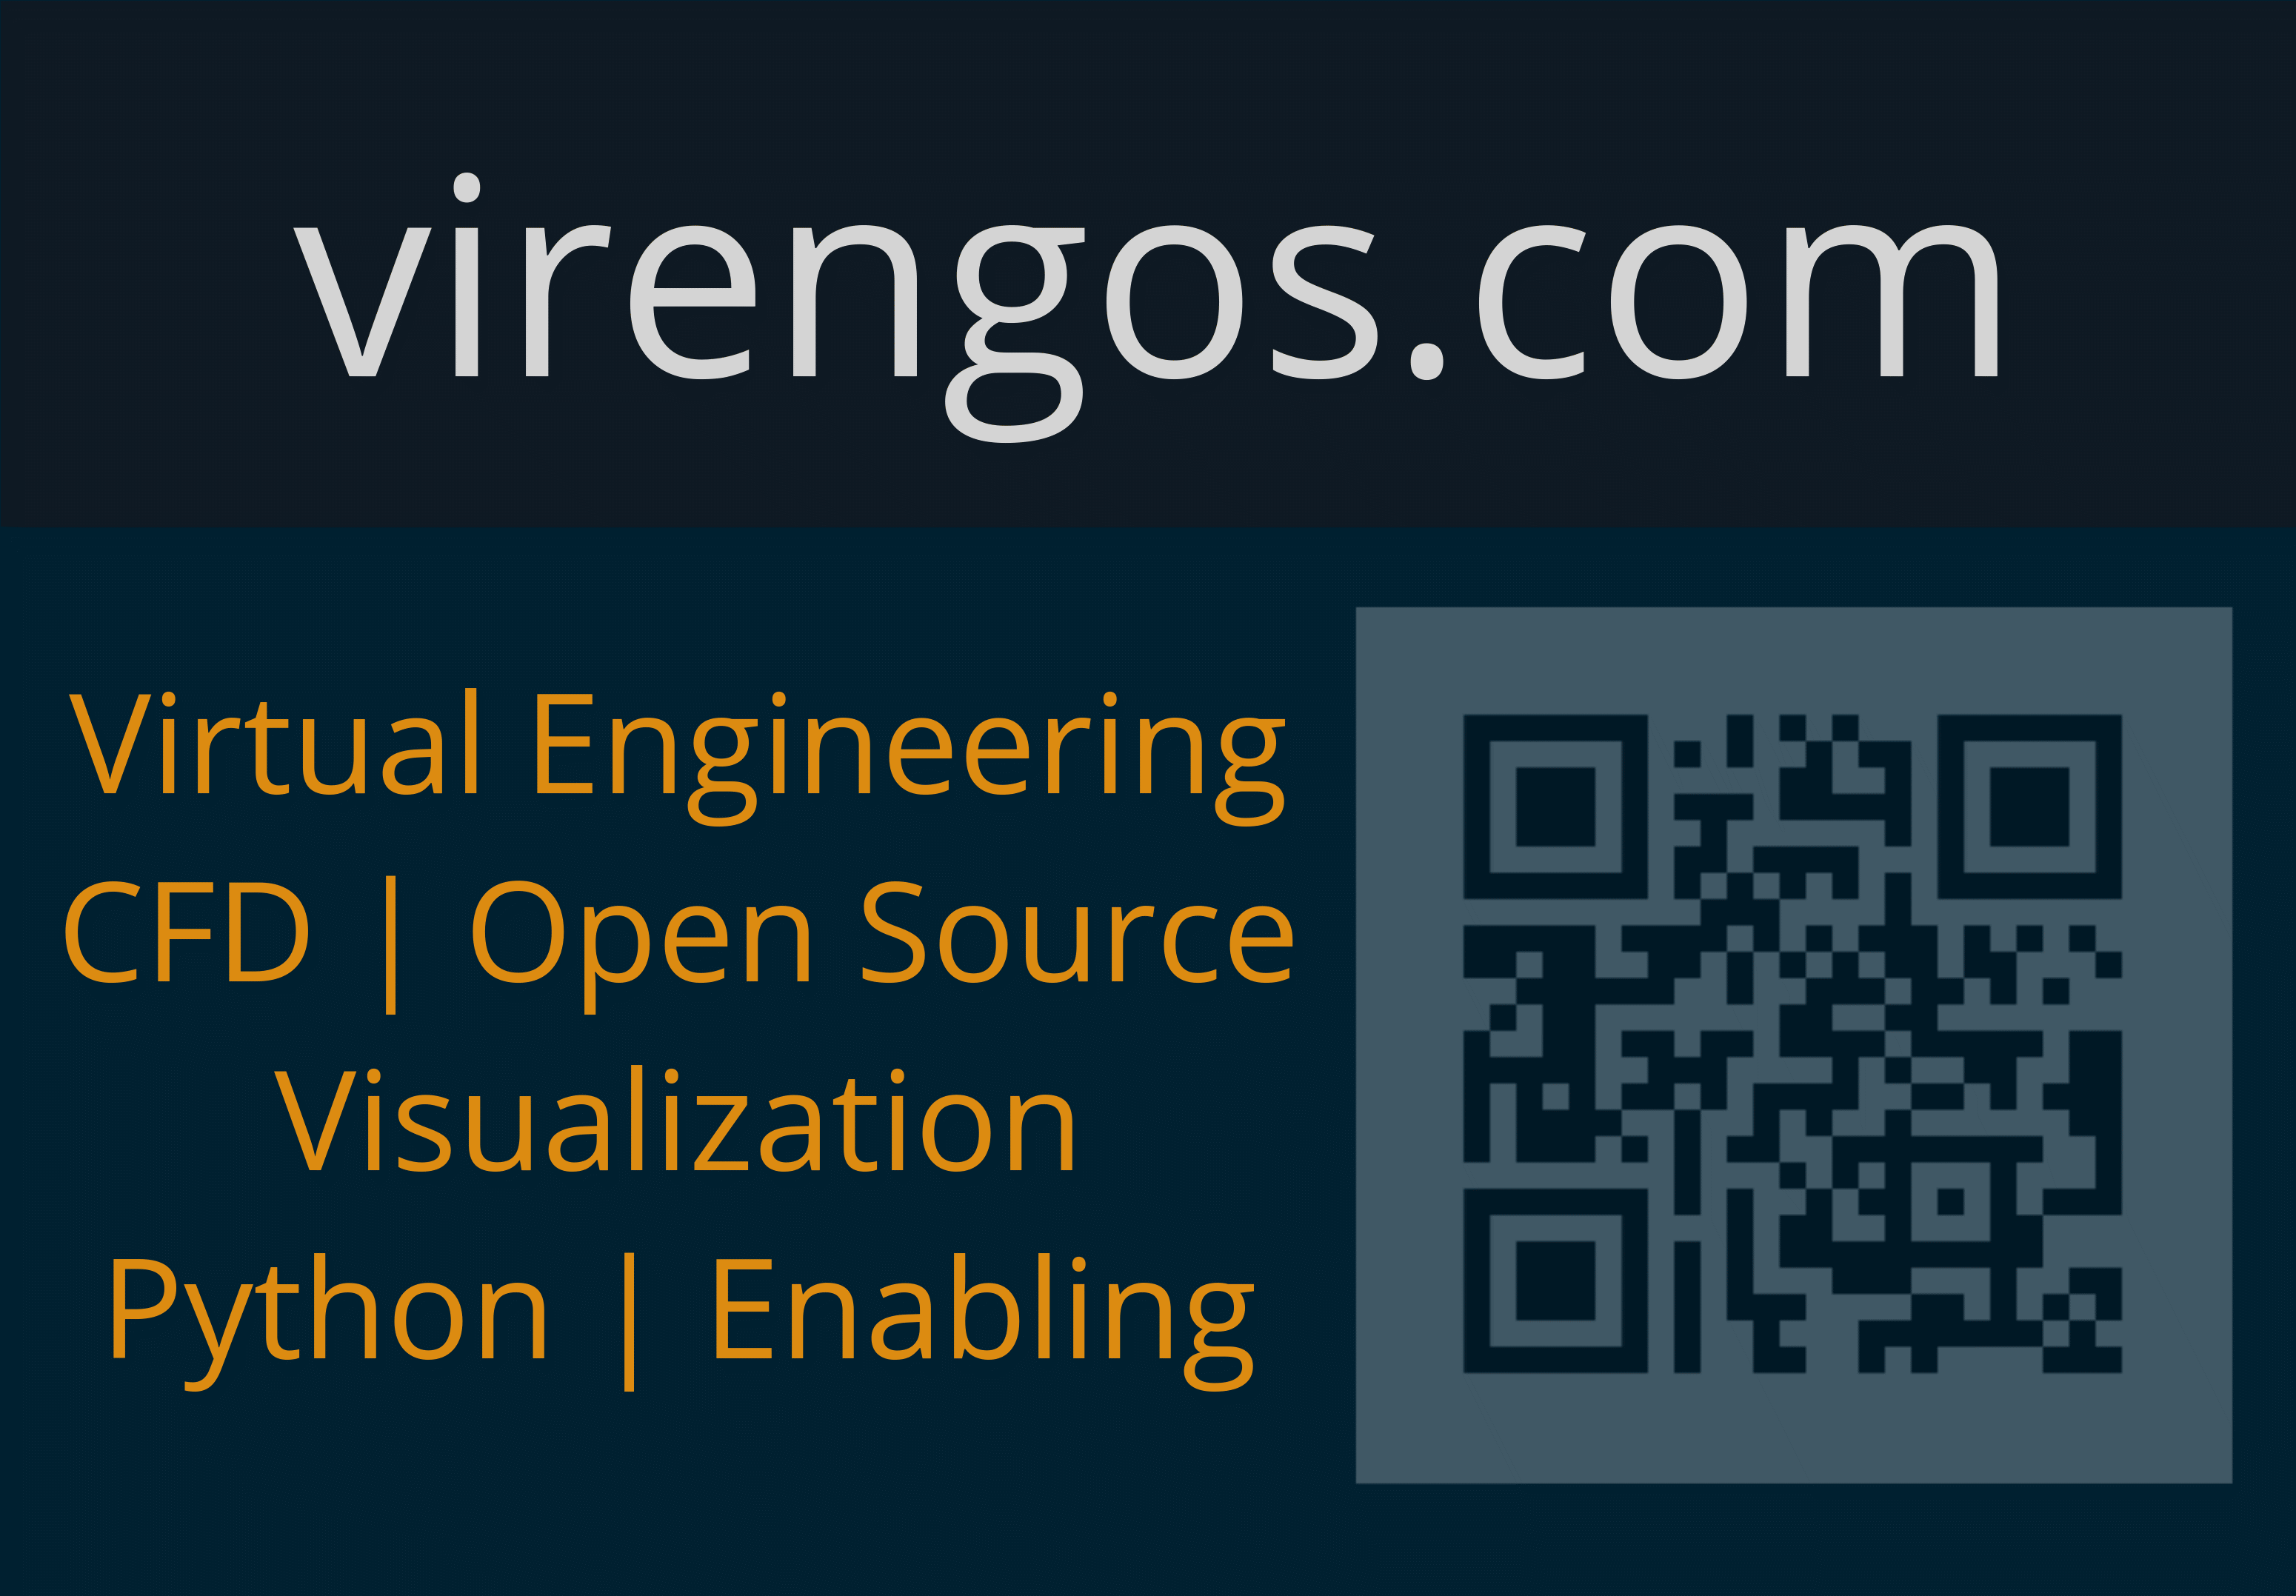 Virtual Engineering with Free and Open Source Software